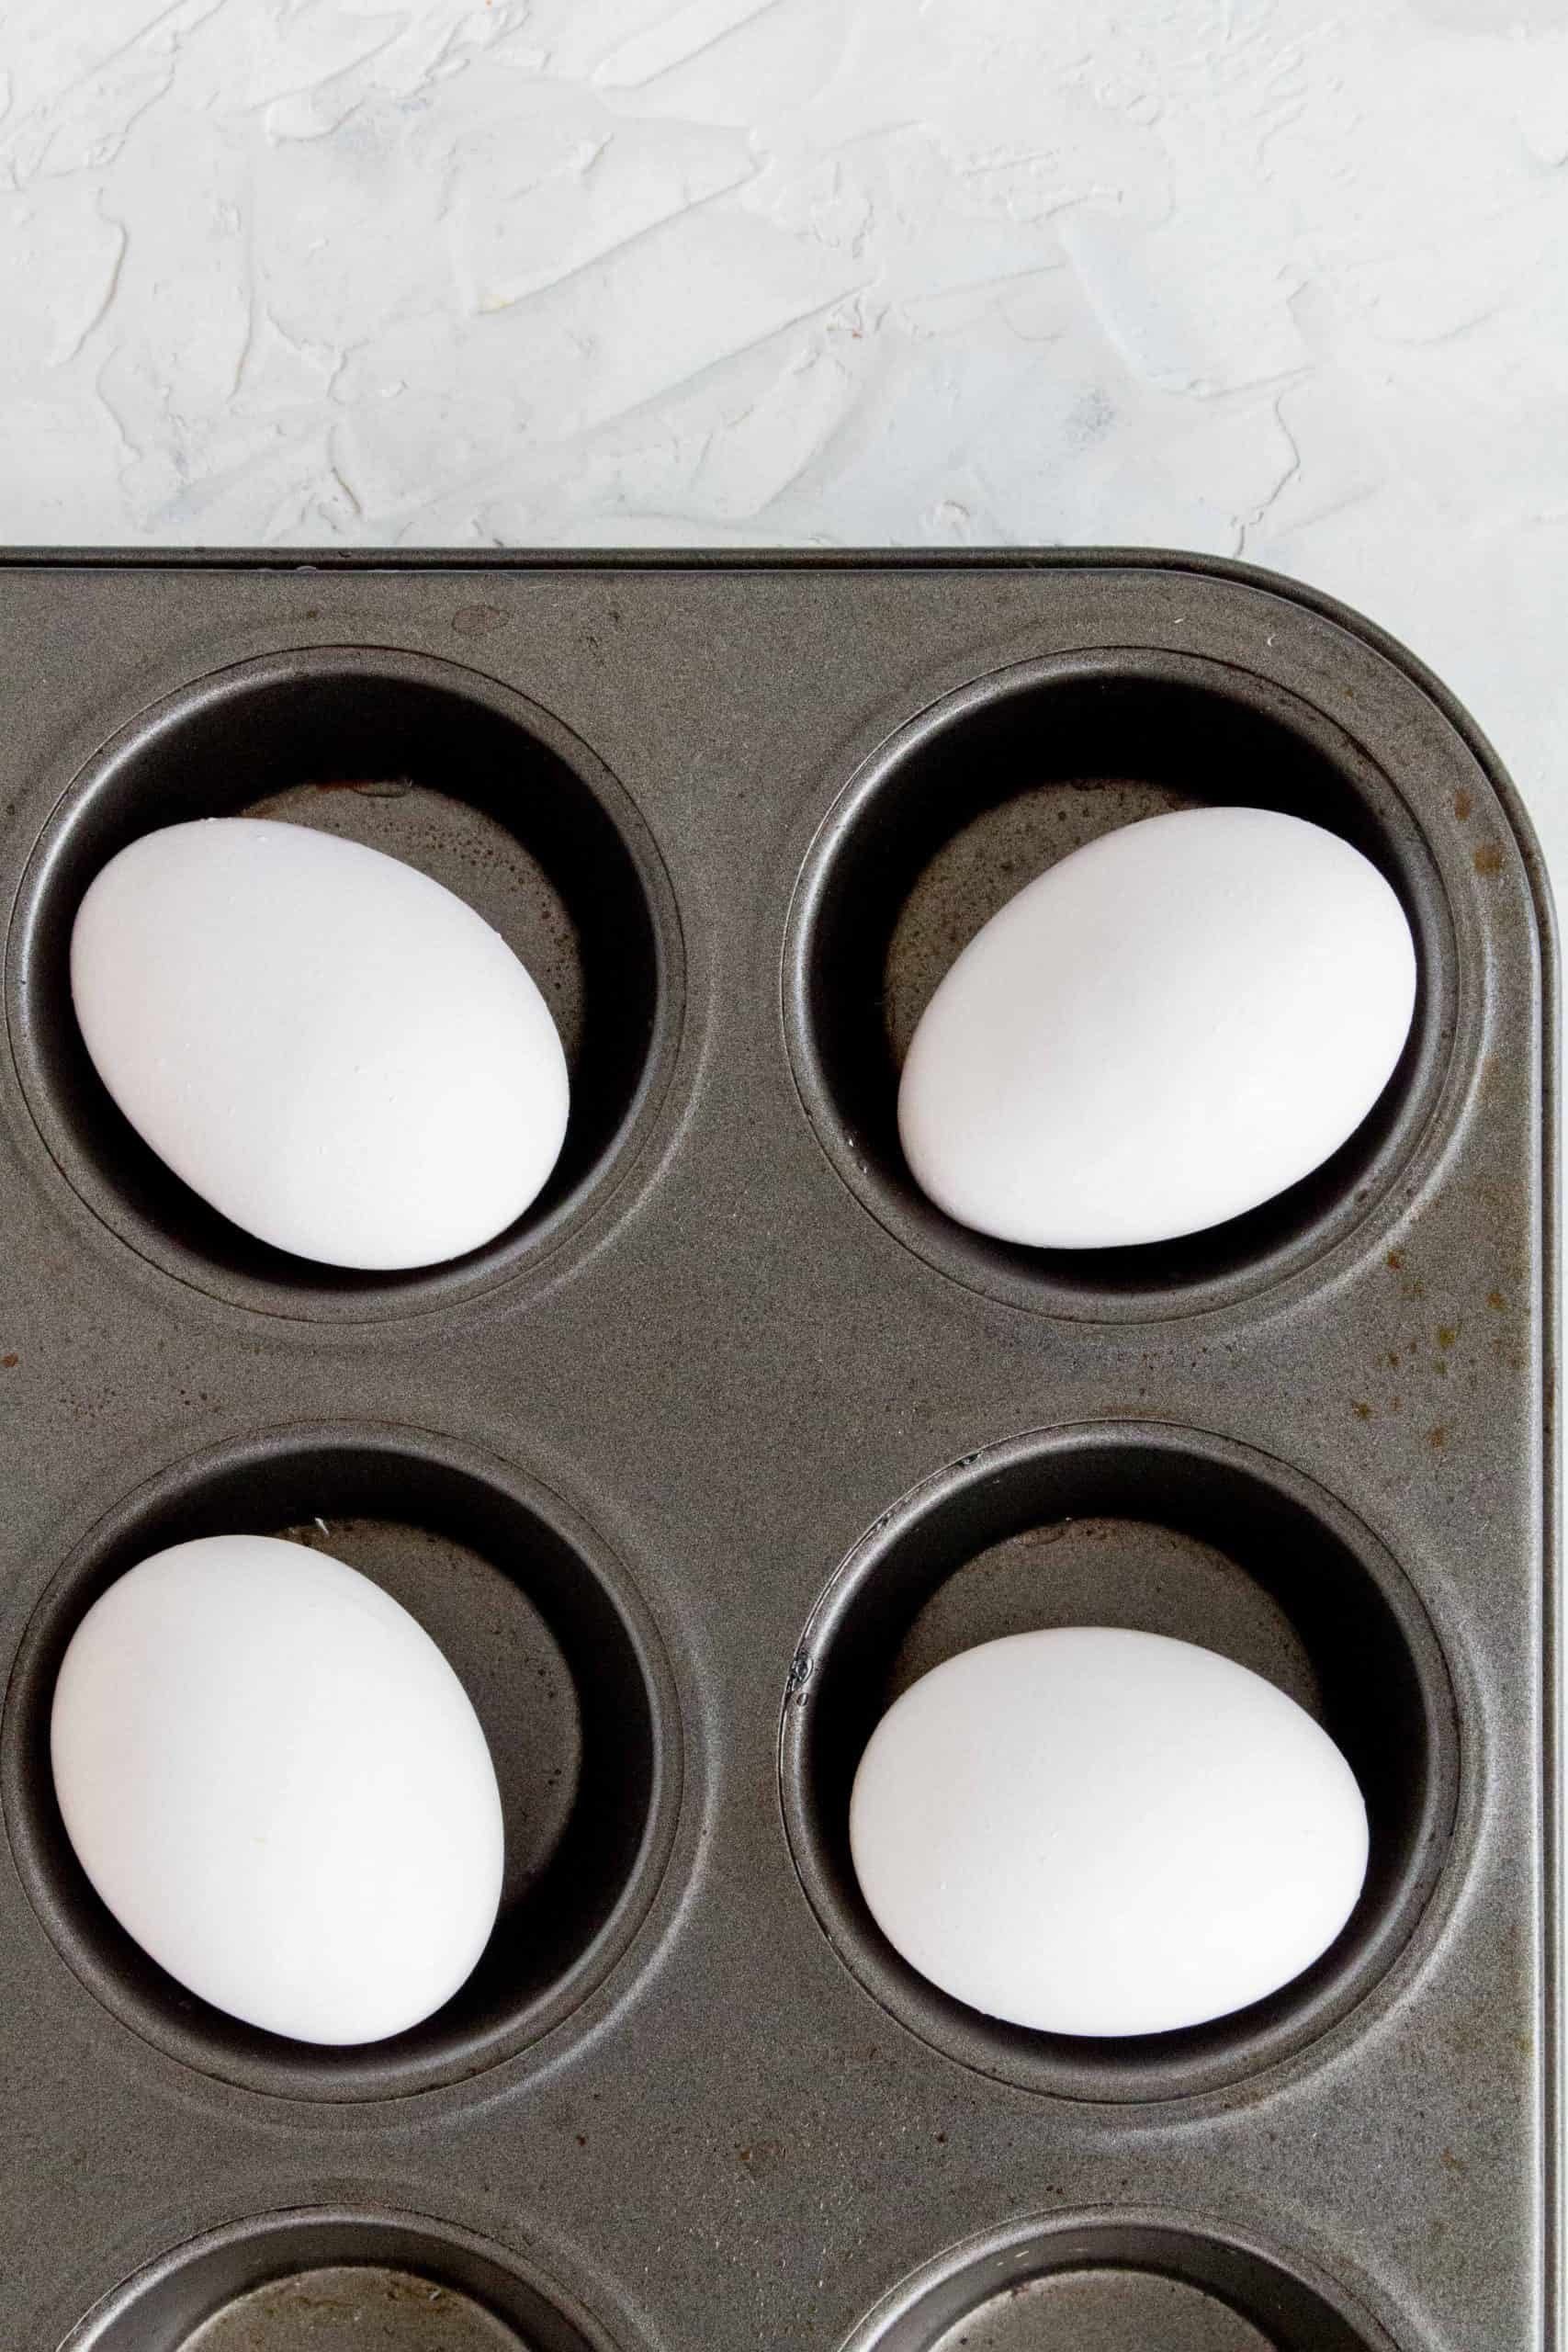 eggs in muffin tin to be baked